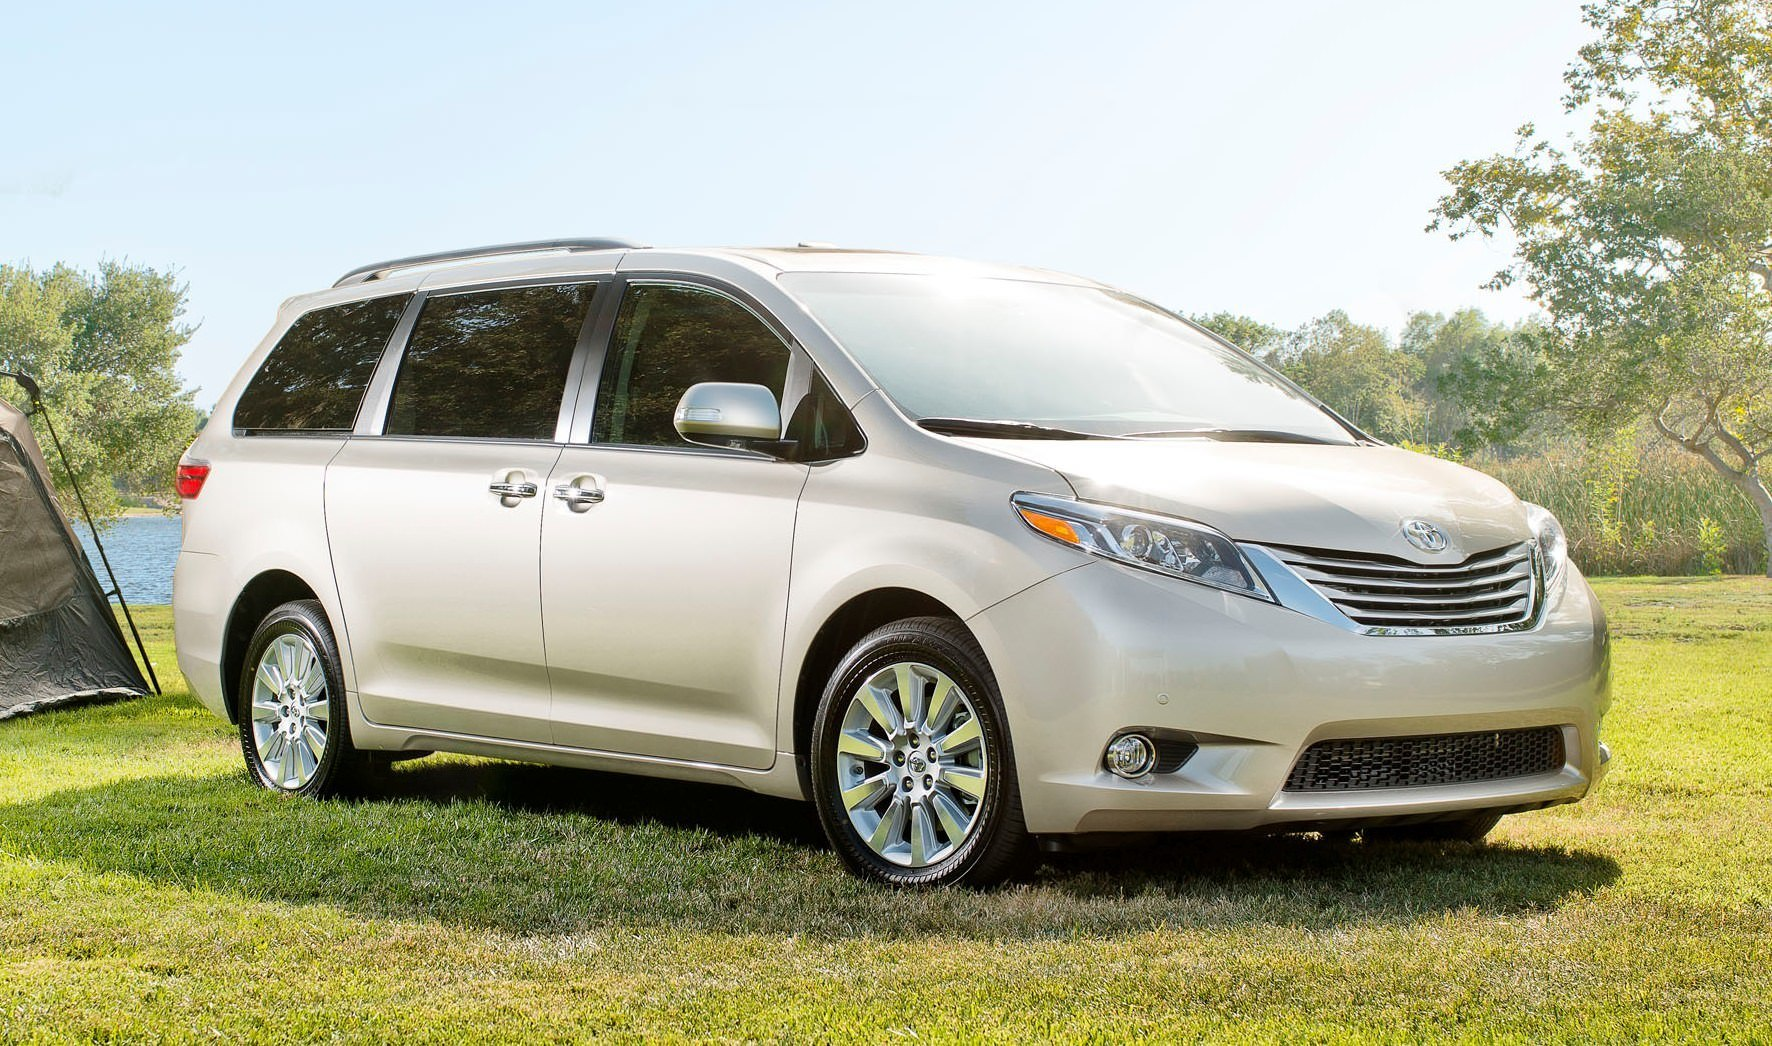 2015 toyota sienna brings refreshed touchscreens dark new nose with led low beams and led drls. Black Bedroom Furniture Sets. Home Design Ideas